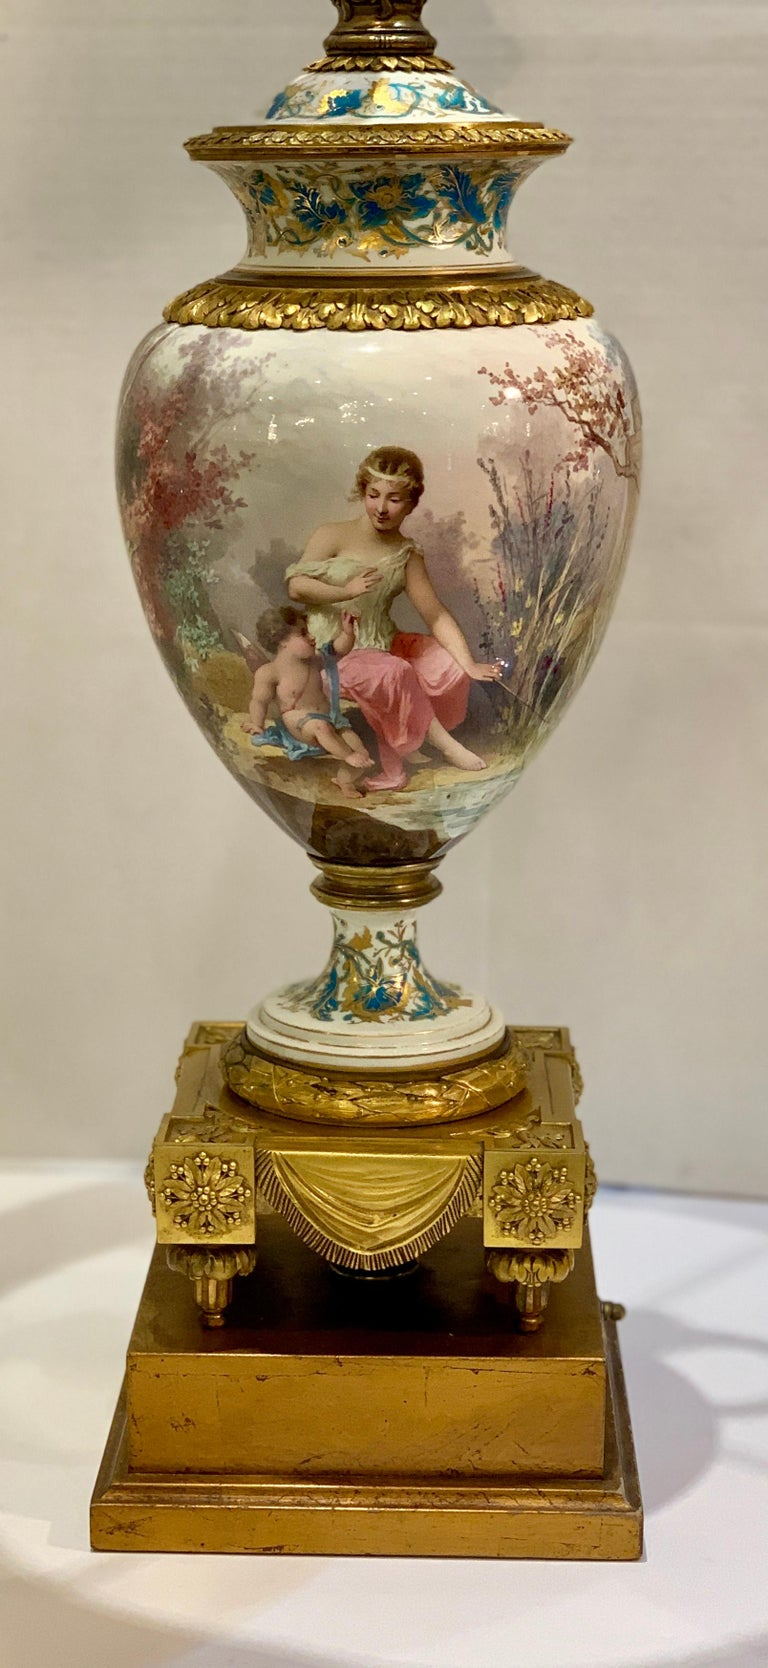 True works of art, these magnificently hand painted, Sevres or psudo-Sevres porcelain lamps from the late 19th century were originally lidded vases. Exquisitely painted in the round and signed by the famous artist Charles Lebarre, and featuring 4